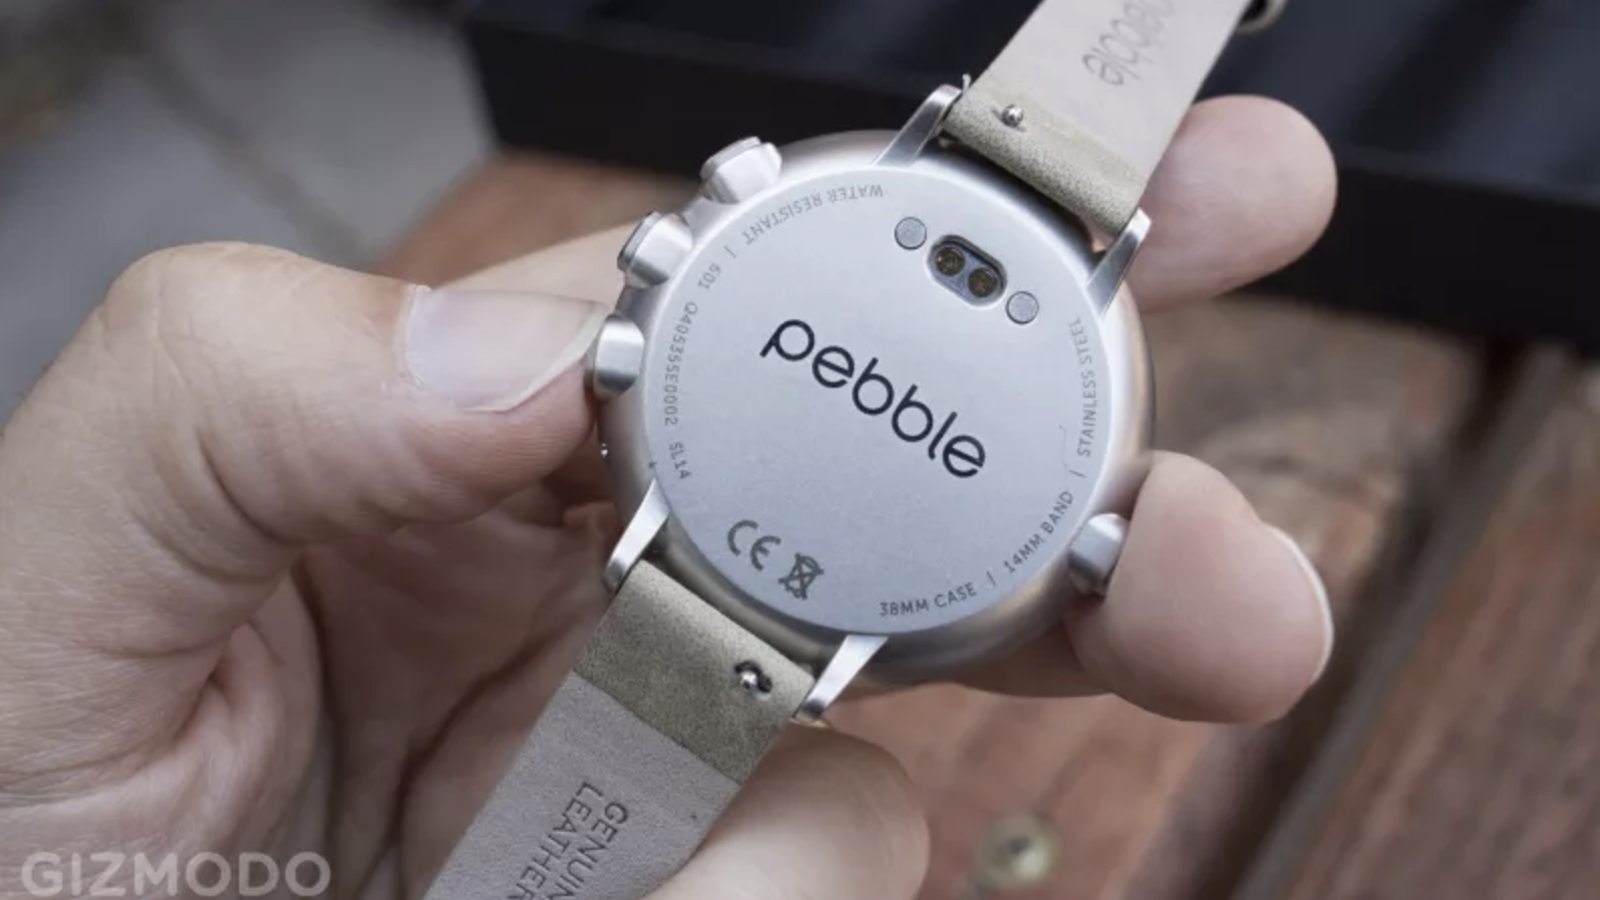 Watch Post It Notes Pebble Is Dead And Its Customers Are Completely Screwed